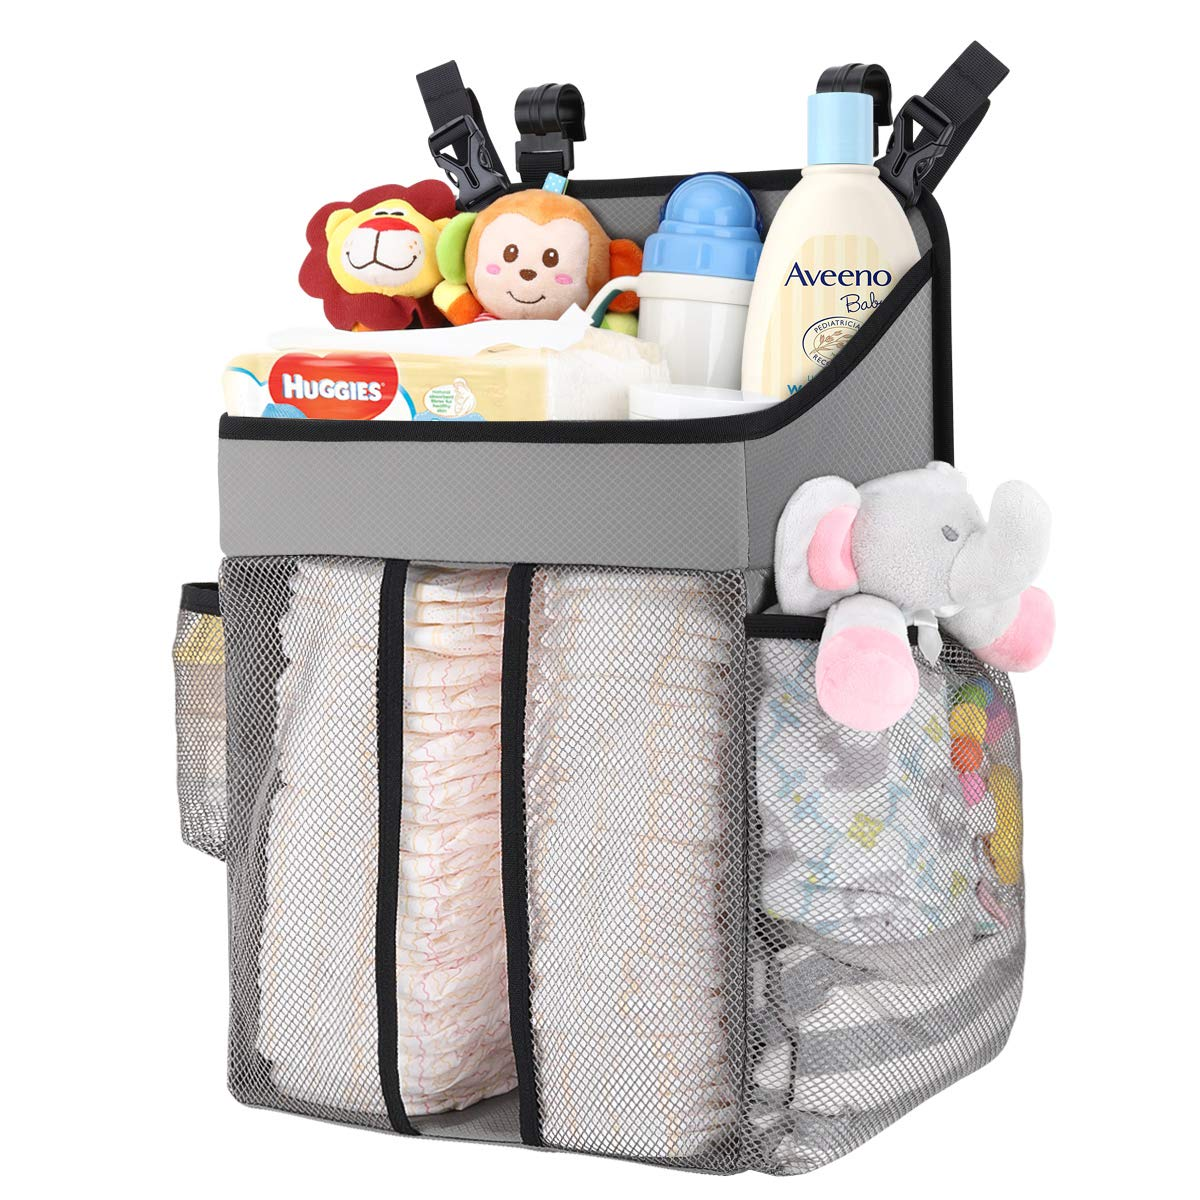 Zooawa Hanging Crib Organizer, Large Capacity Hanging Diaper Caddy Nursery Bag Crib Diaper Organizer for Diapers Wipes Baby Essentials Storage - Gray by Zooawa